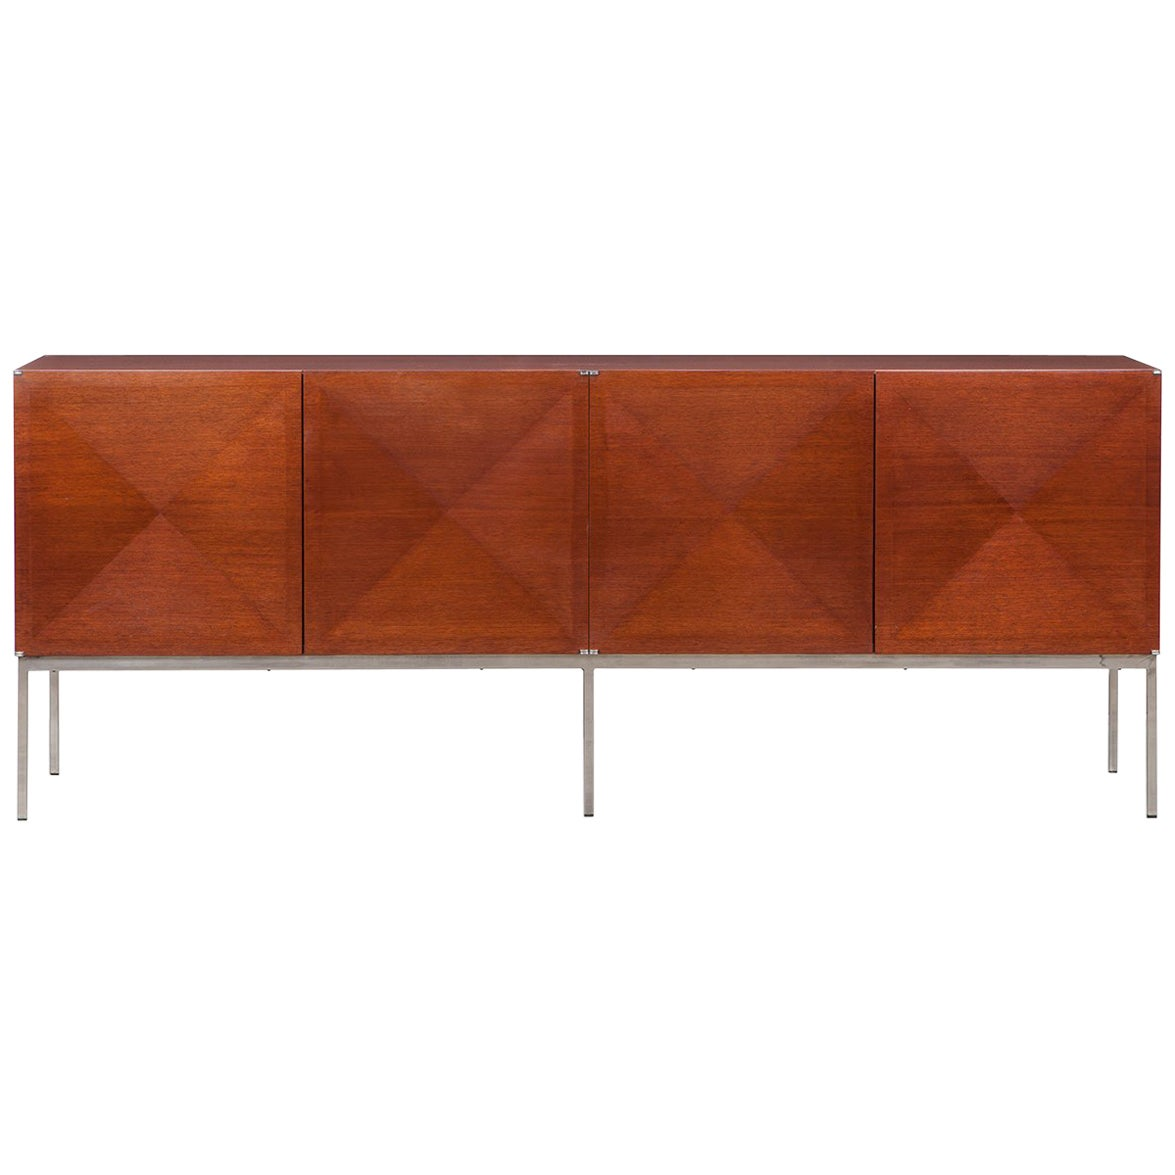 1960s Brown Mahogany Sideboard by Antoine Philippon/Jacqueline Lecoq 'f'